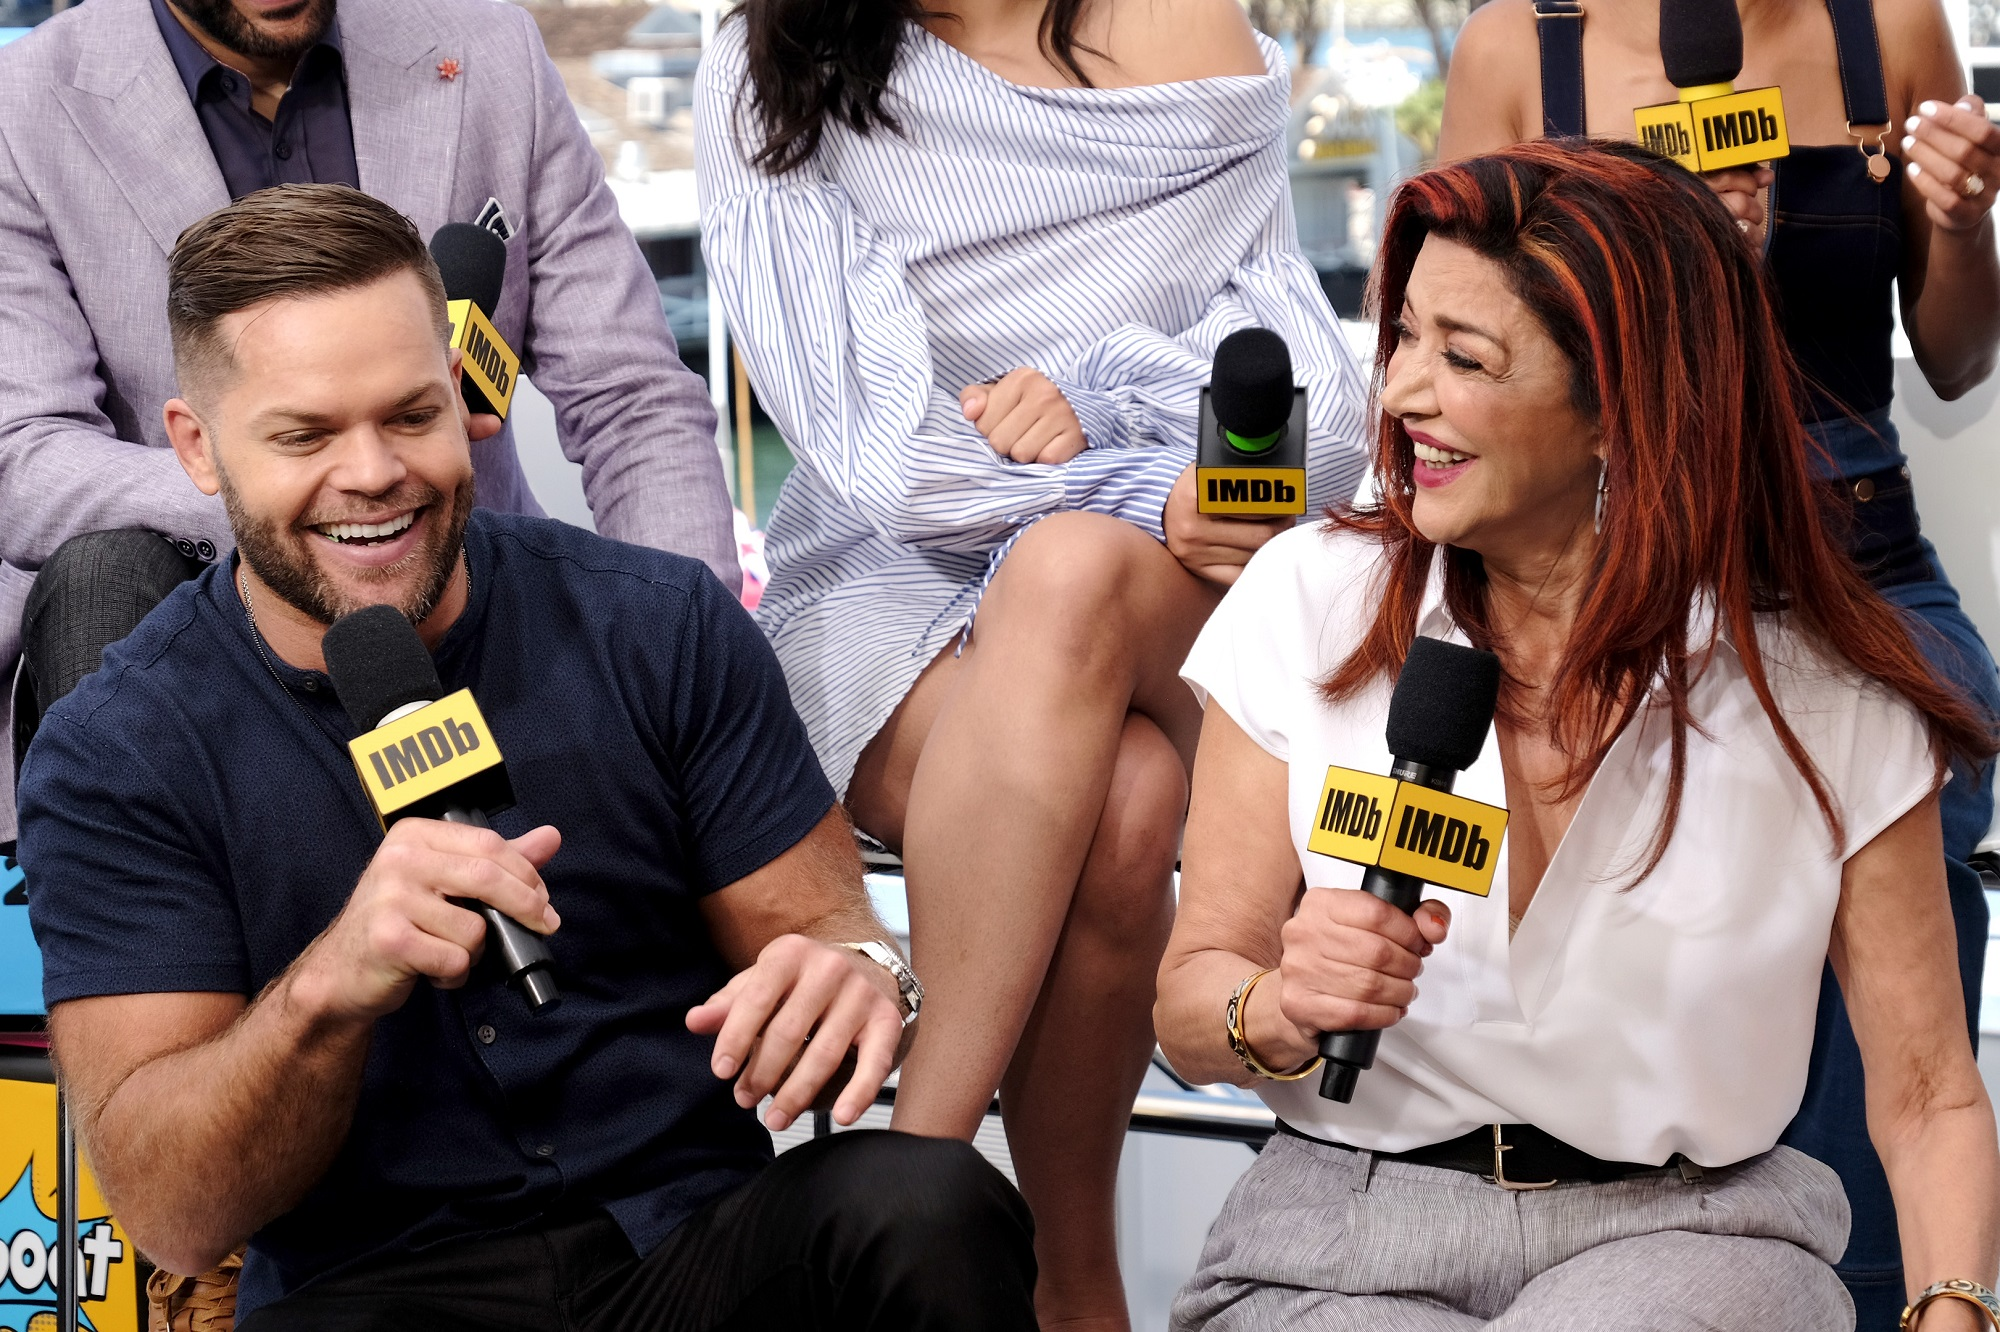 The Expanse Season 5 saw independent storylines for Wes Chatham and Shohreh Aghdashloo